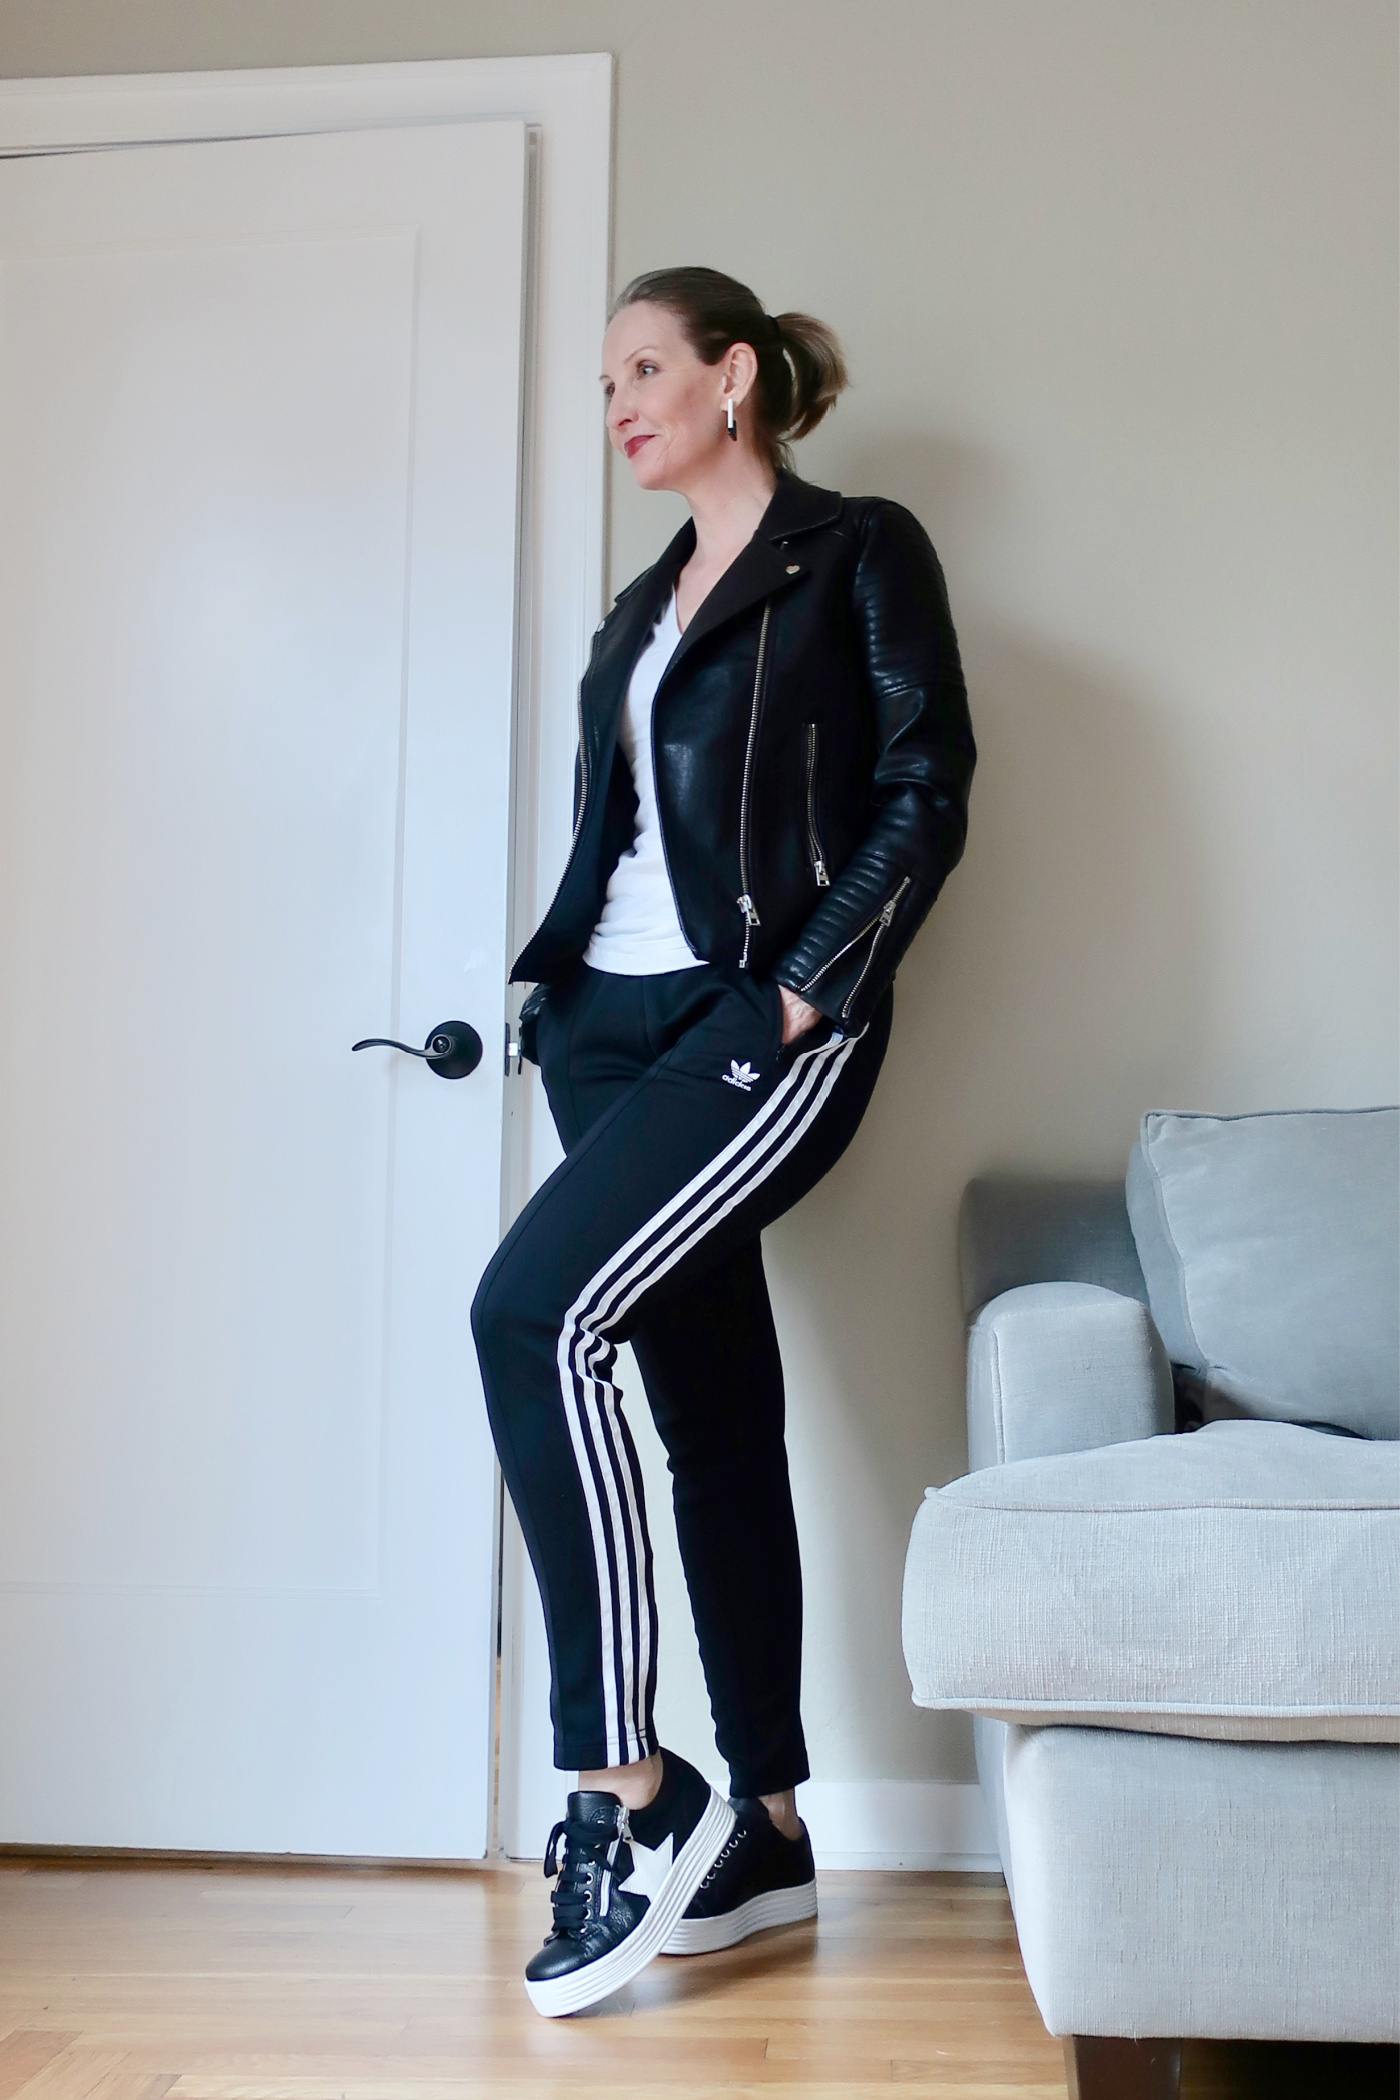 athleisure OOTD, athleisure outfit for women over 40